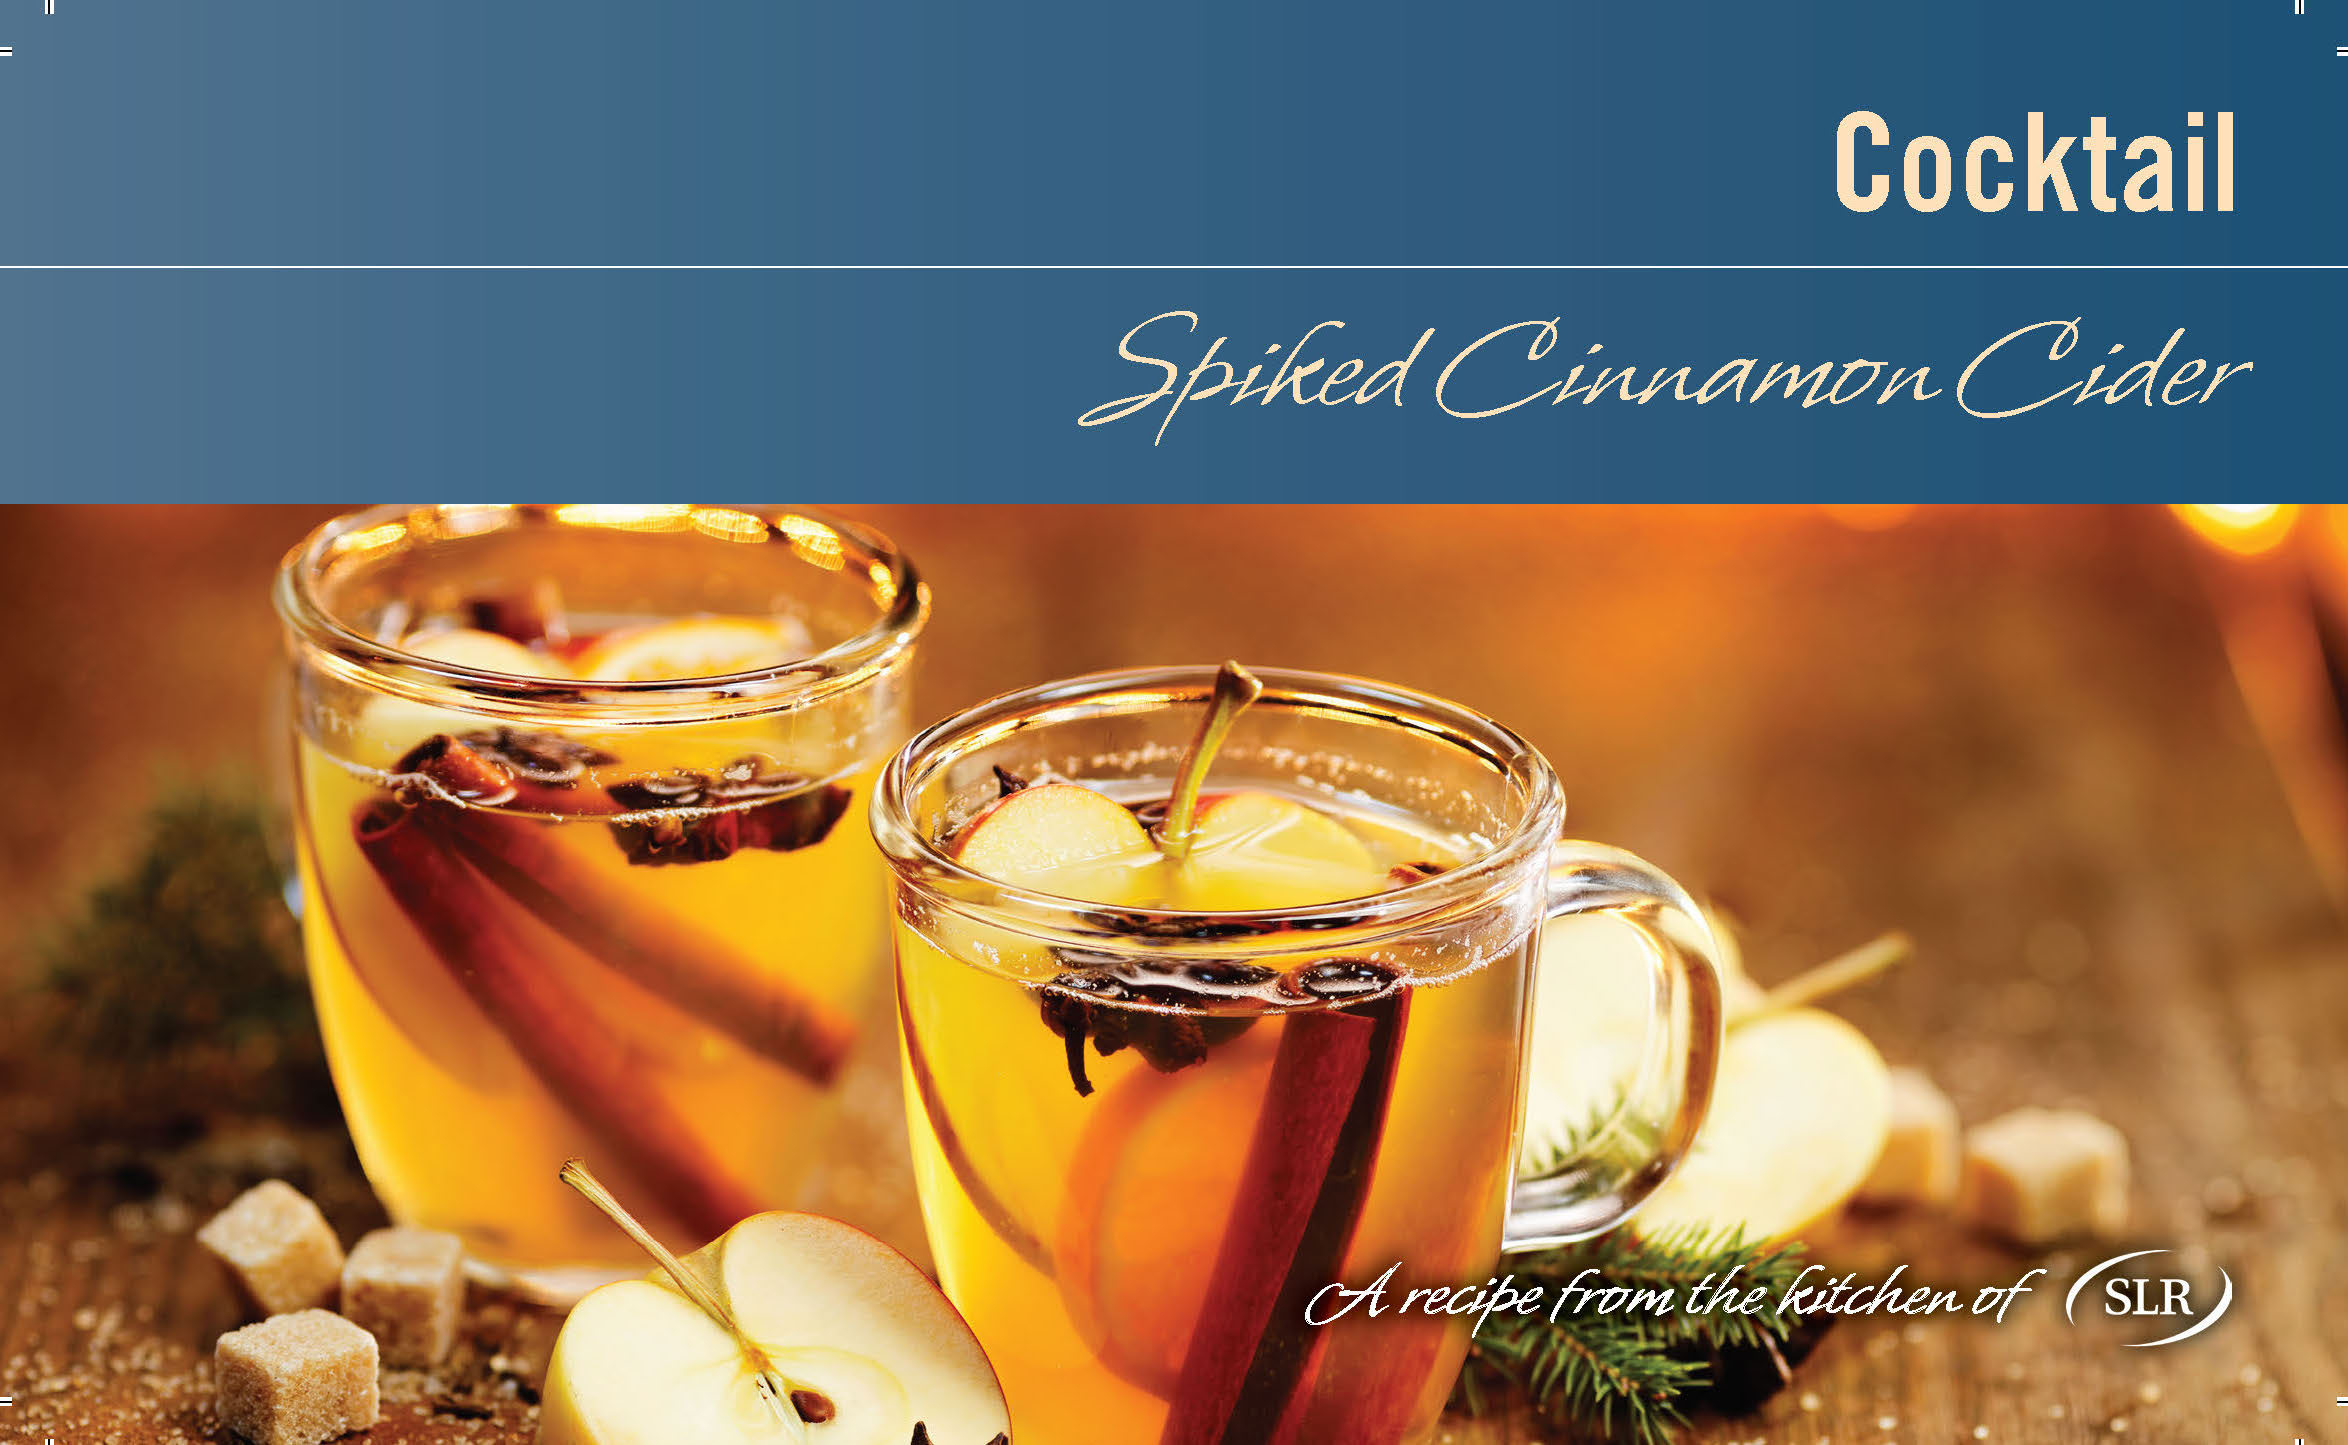 Spiked Cinnamon Cider recipe card